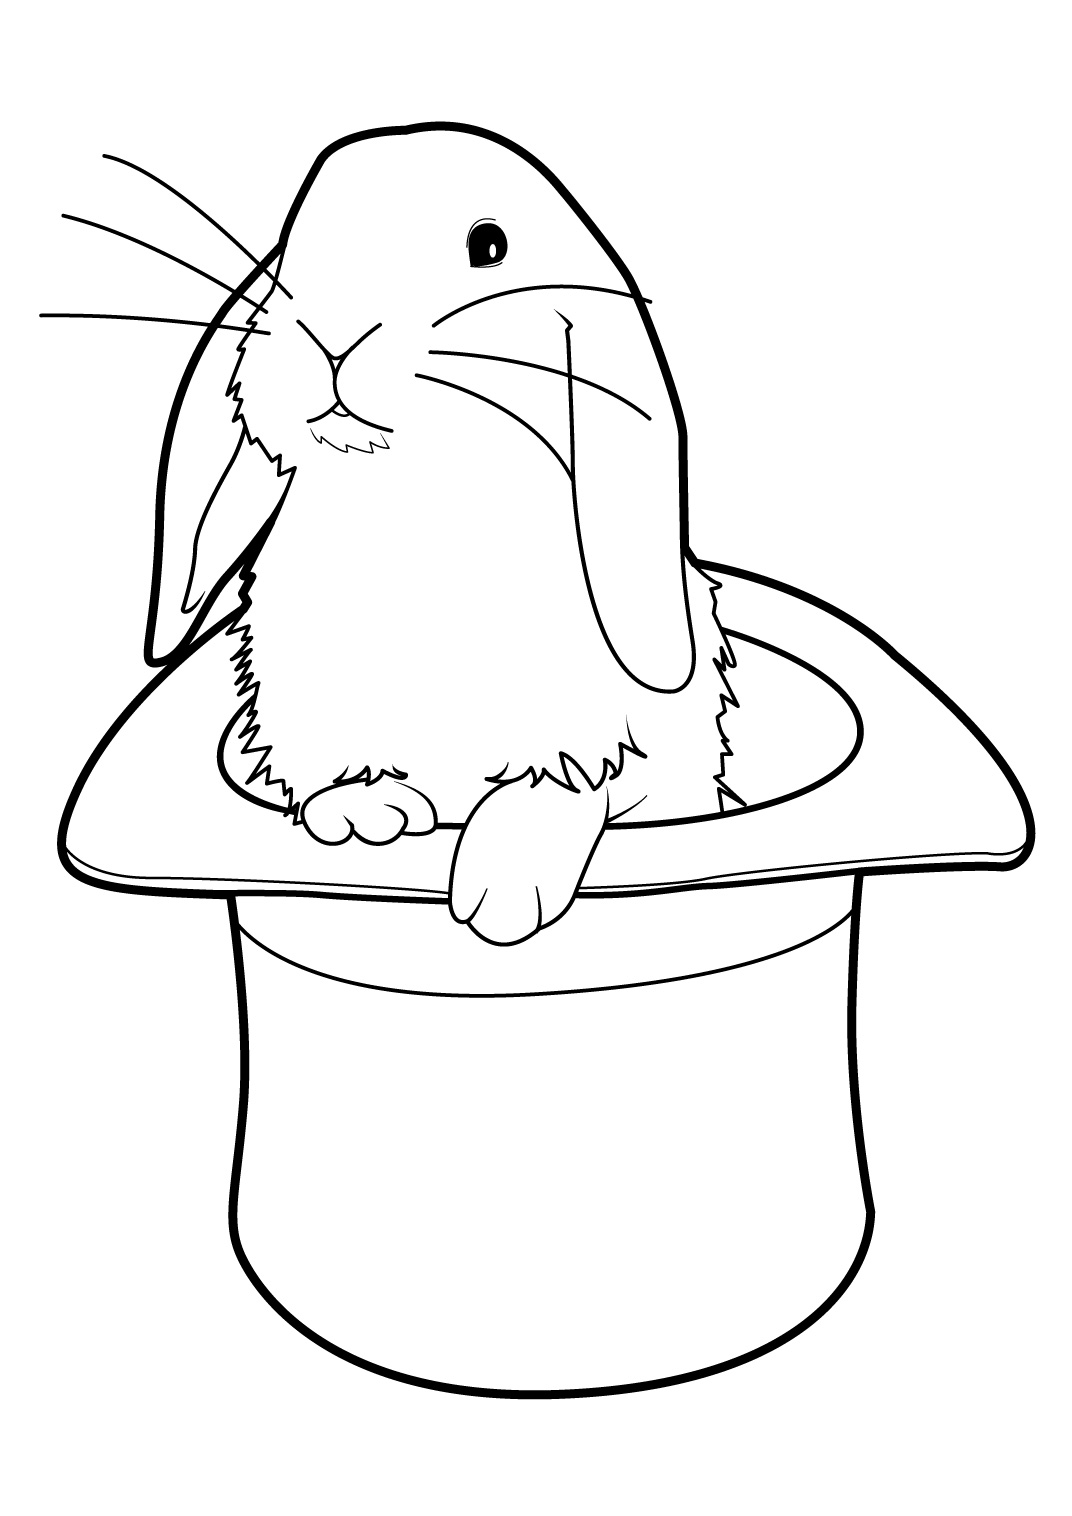 Coloriage simon lapin - Coloriages lapin ...